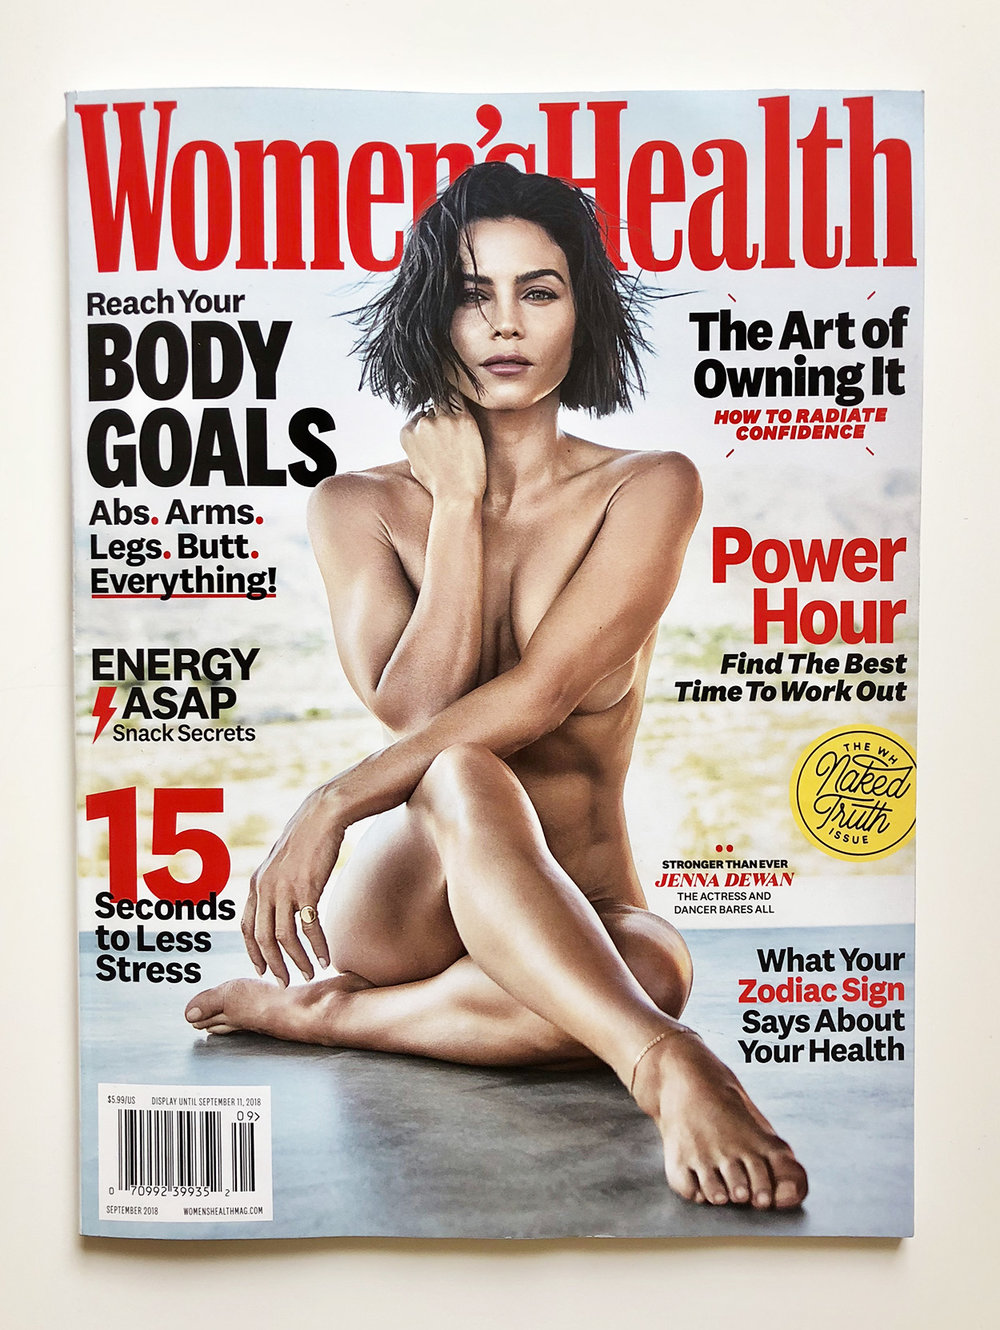 Vira Sun x Women's Health